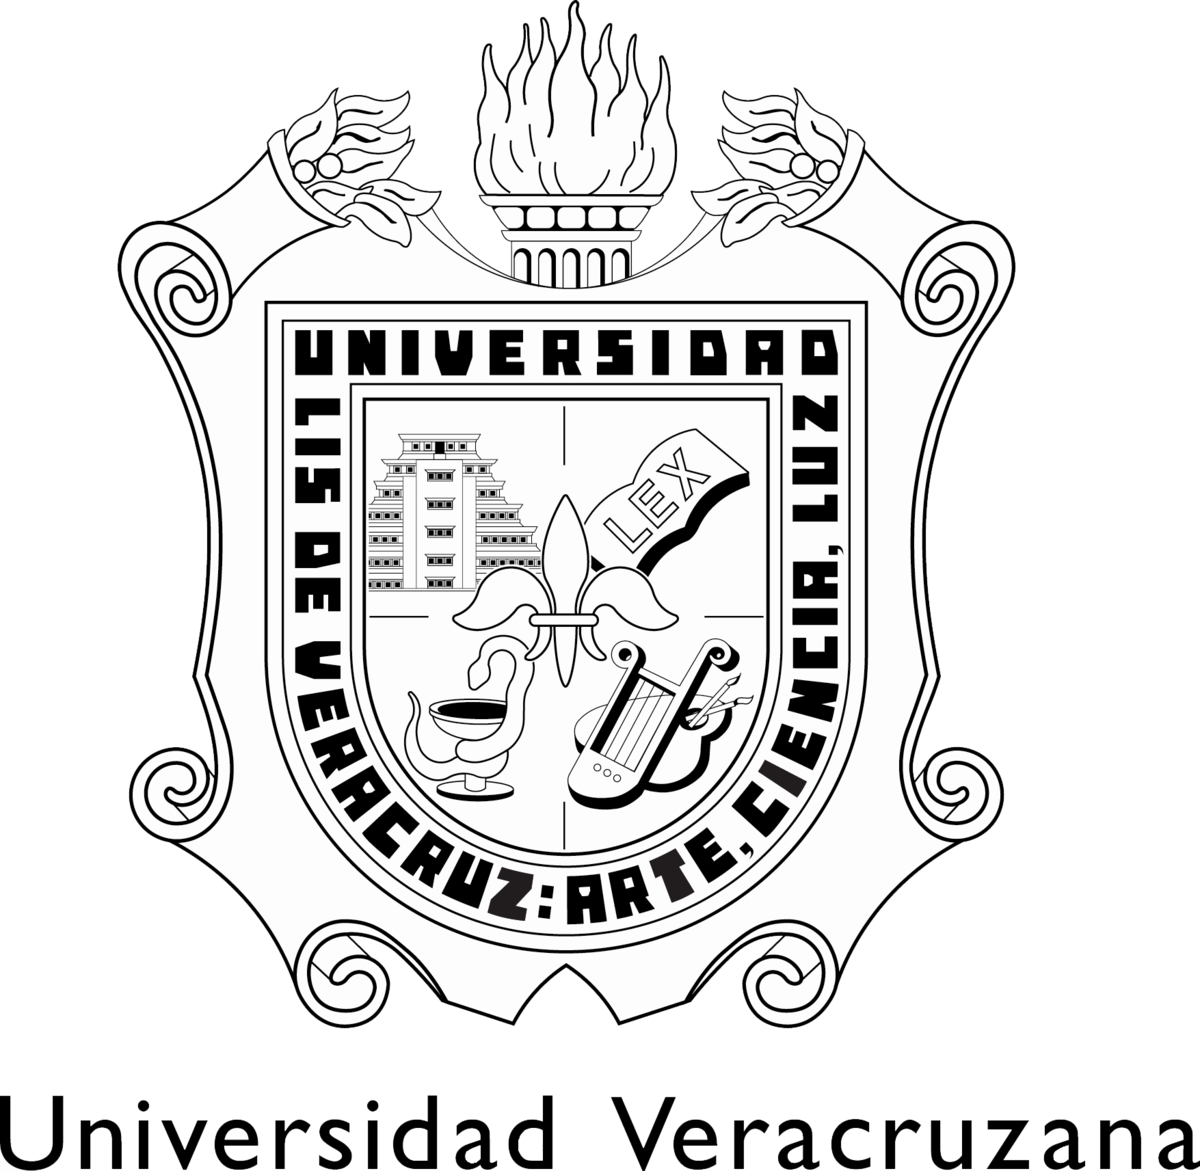 Universidad veracruzana wikipedia la enciclopedia libre for Universidades en veracruz